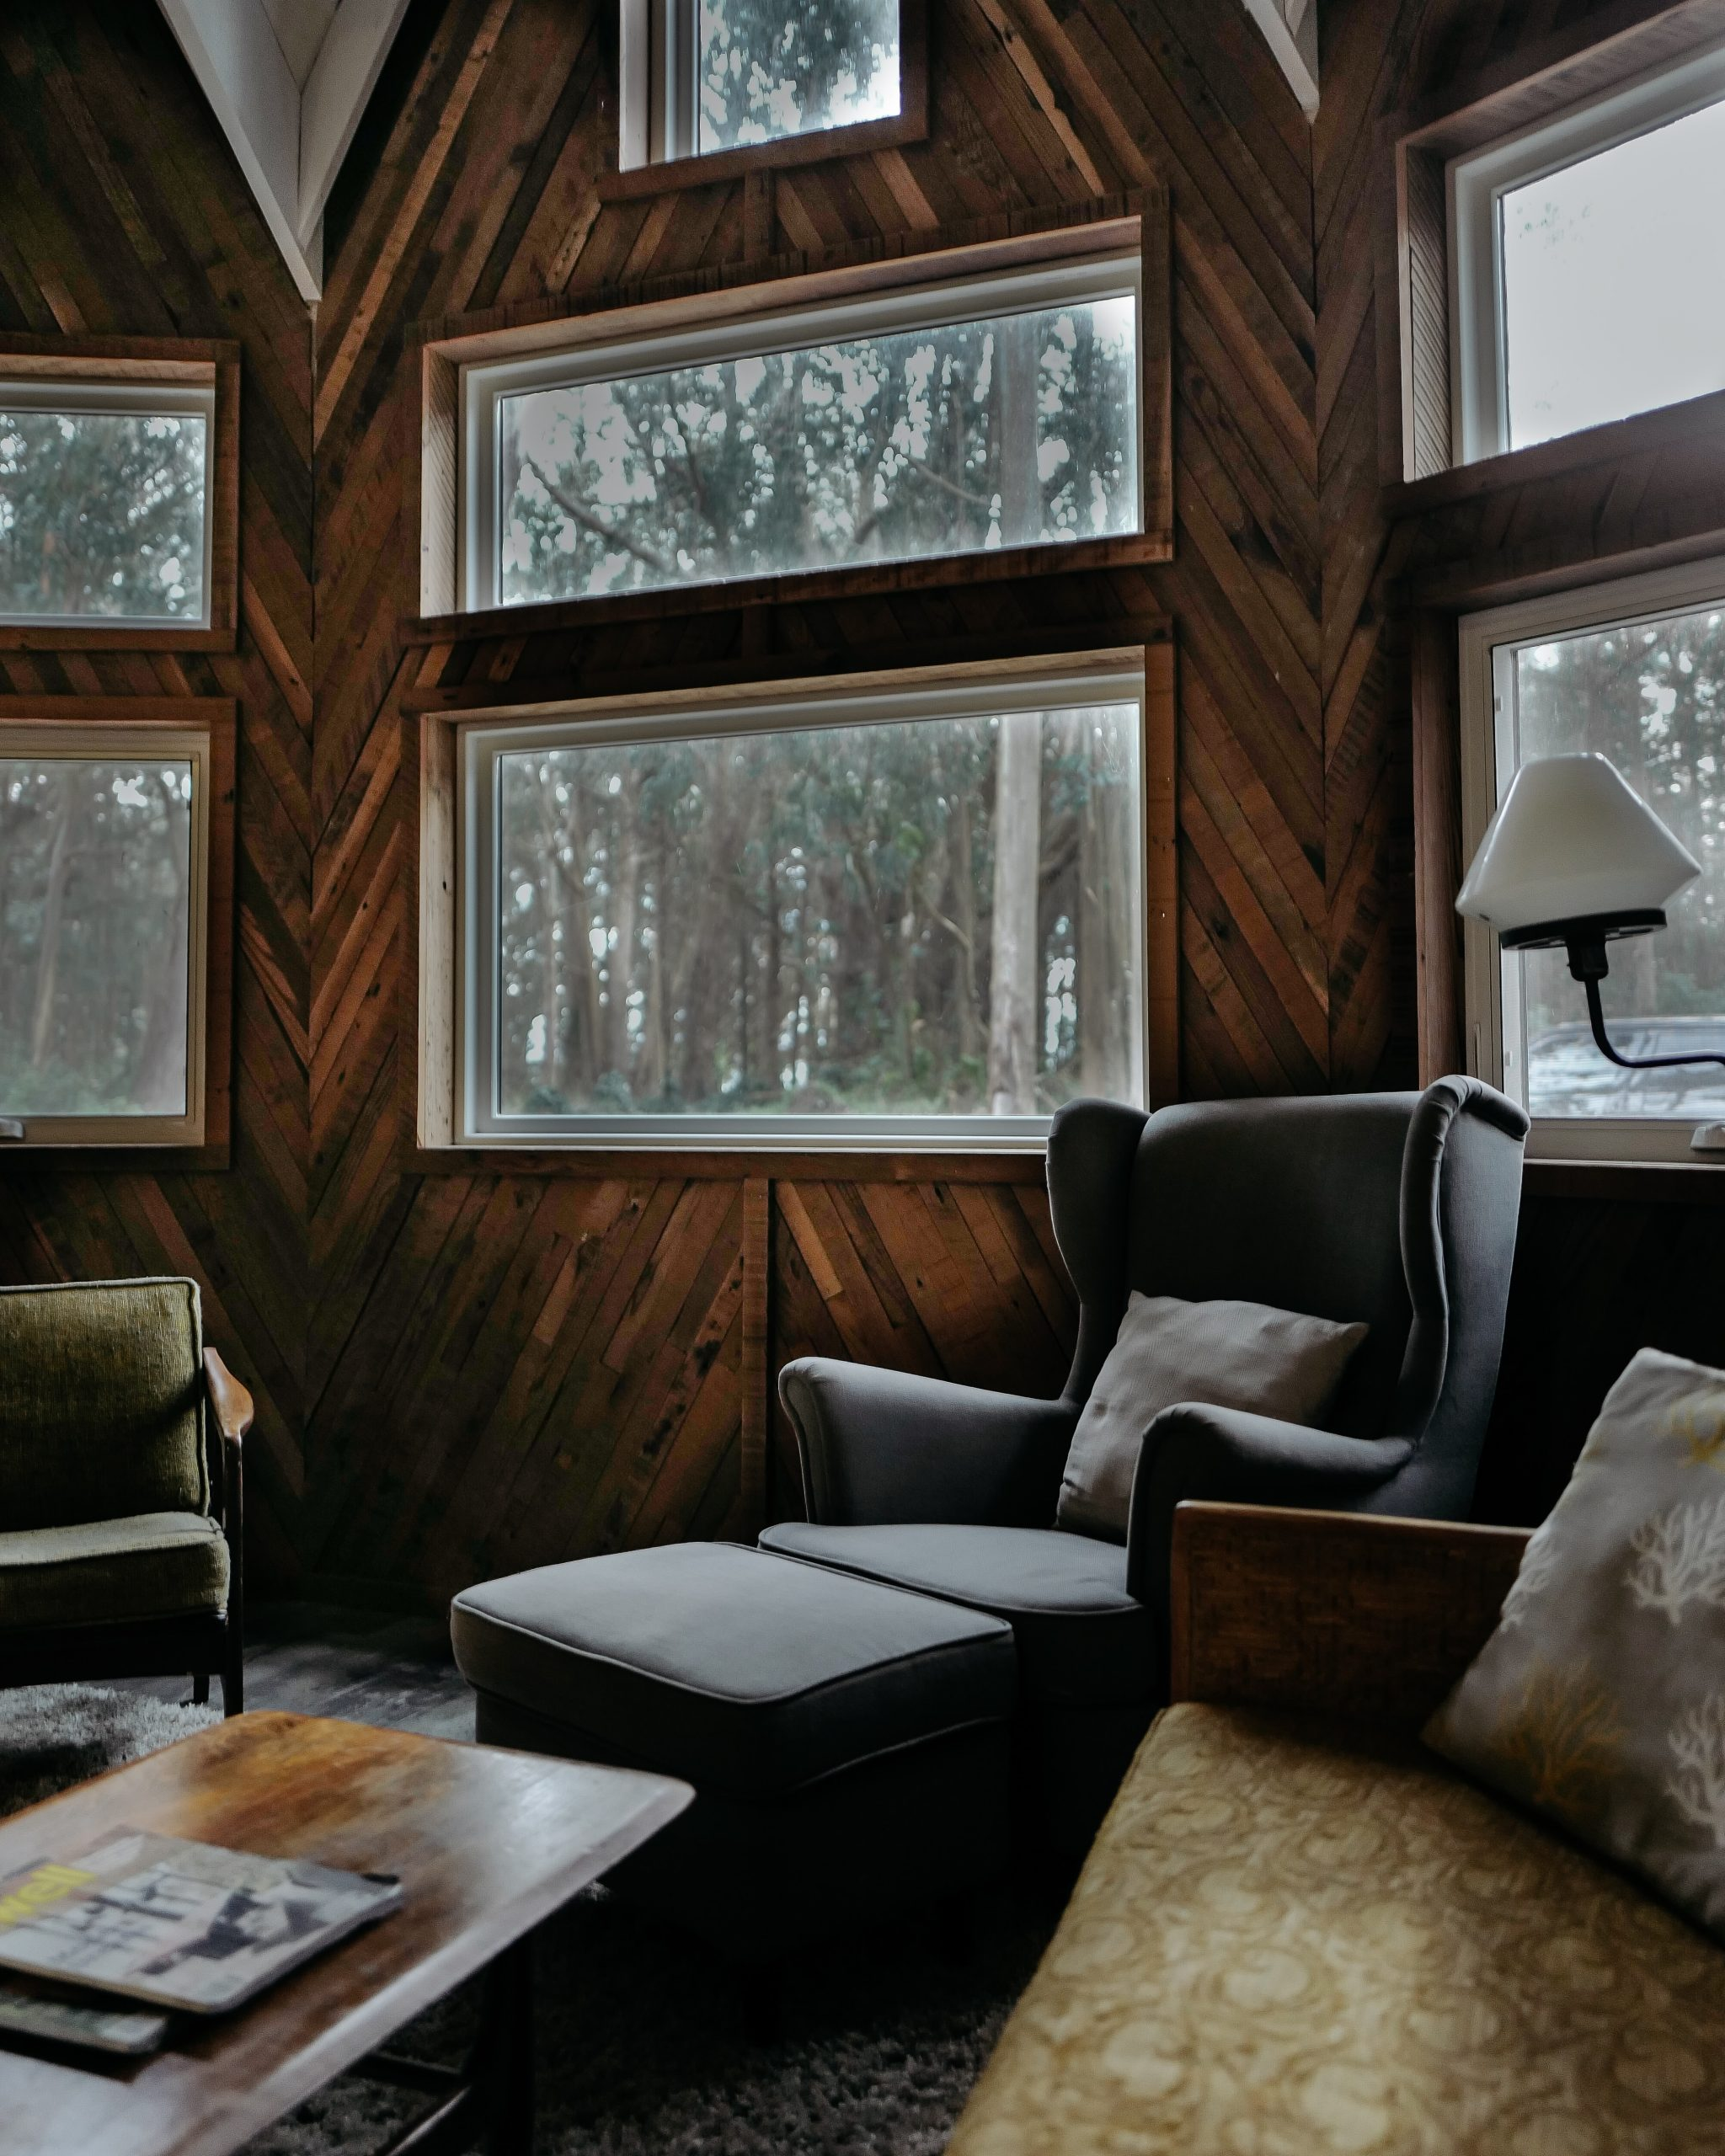 Image shows a photo of a living room with large windows. There is a leather armchair, coffee table, lamp and books. The walls have wood panelling.